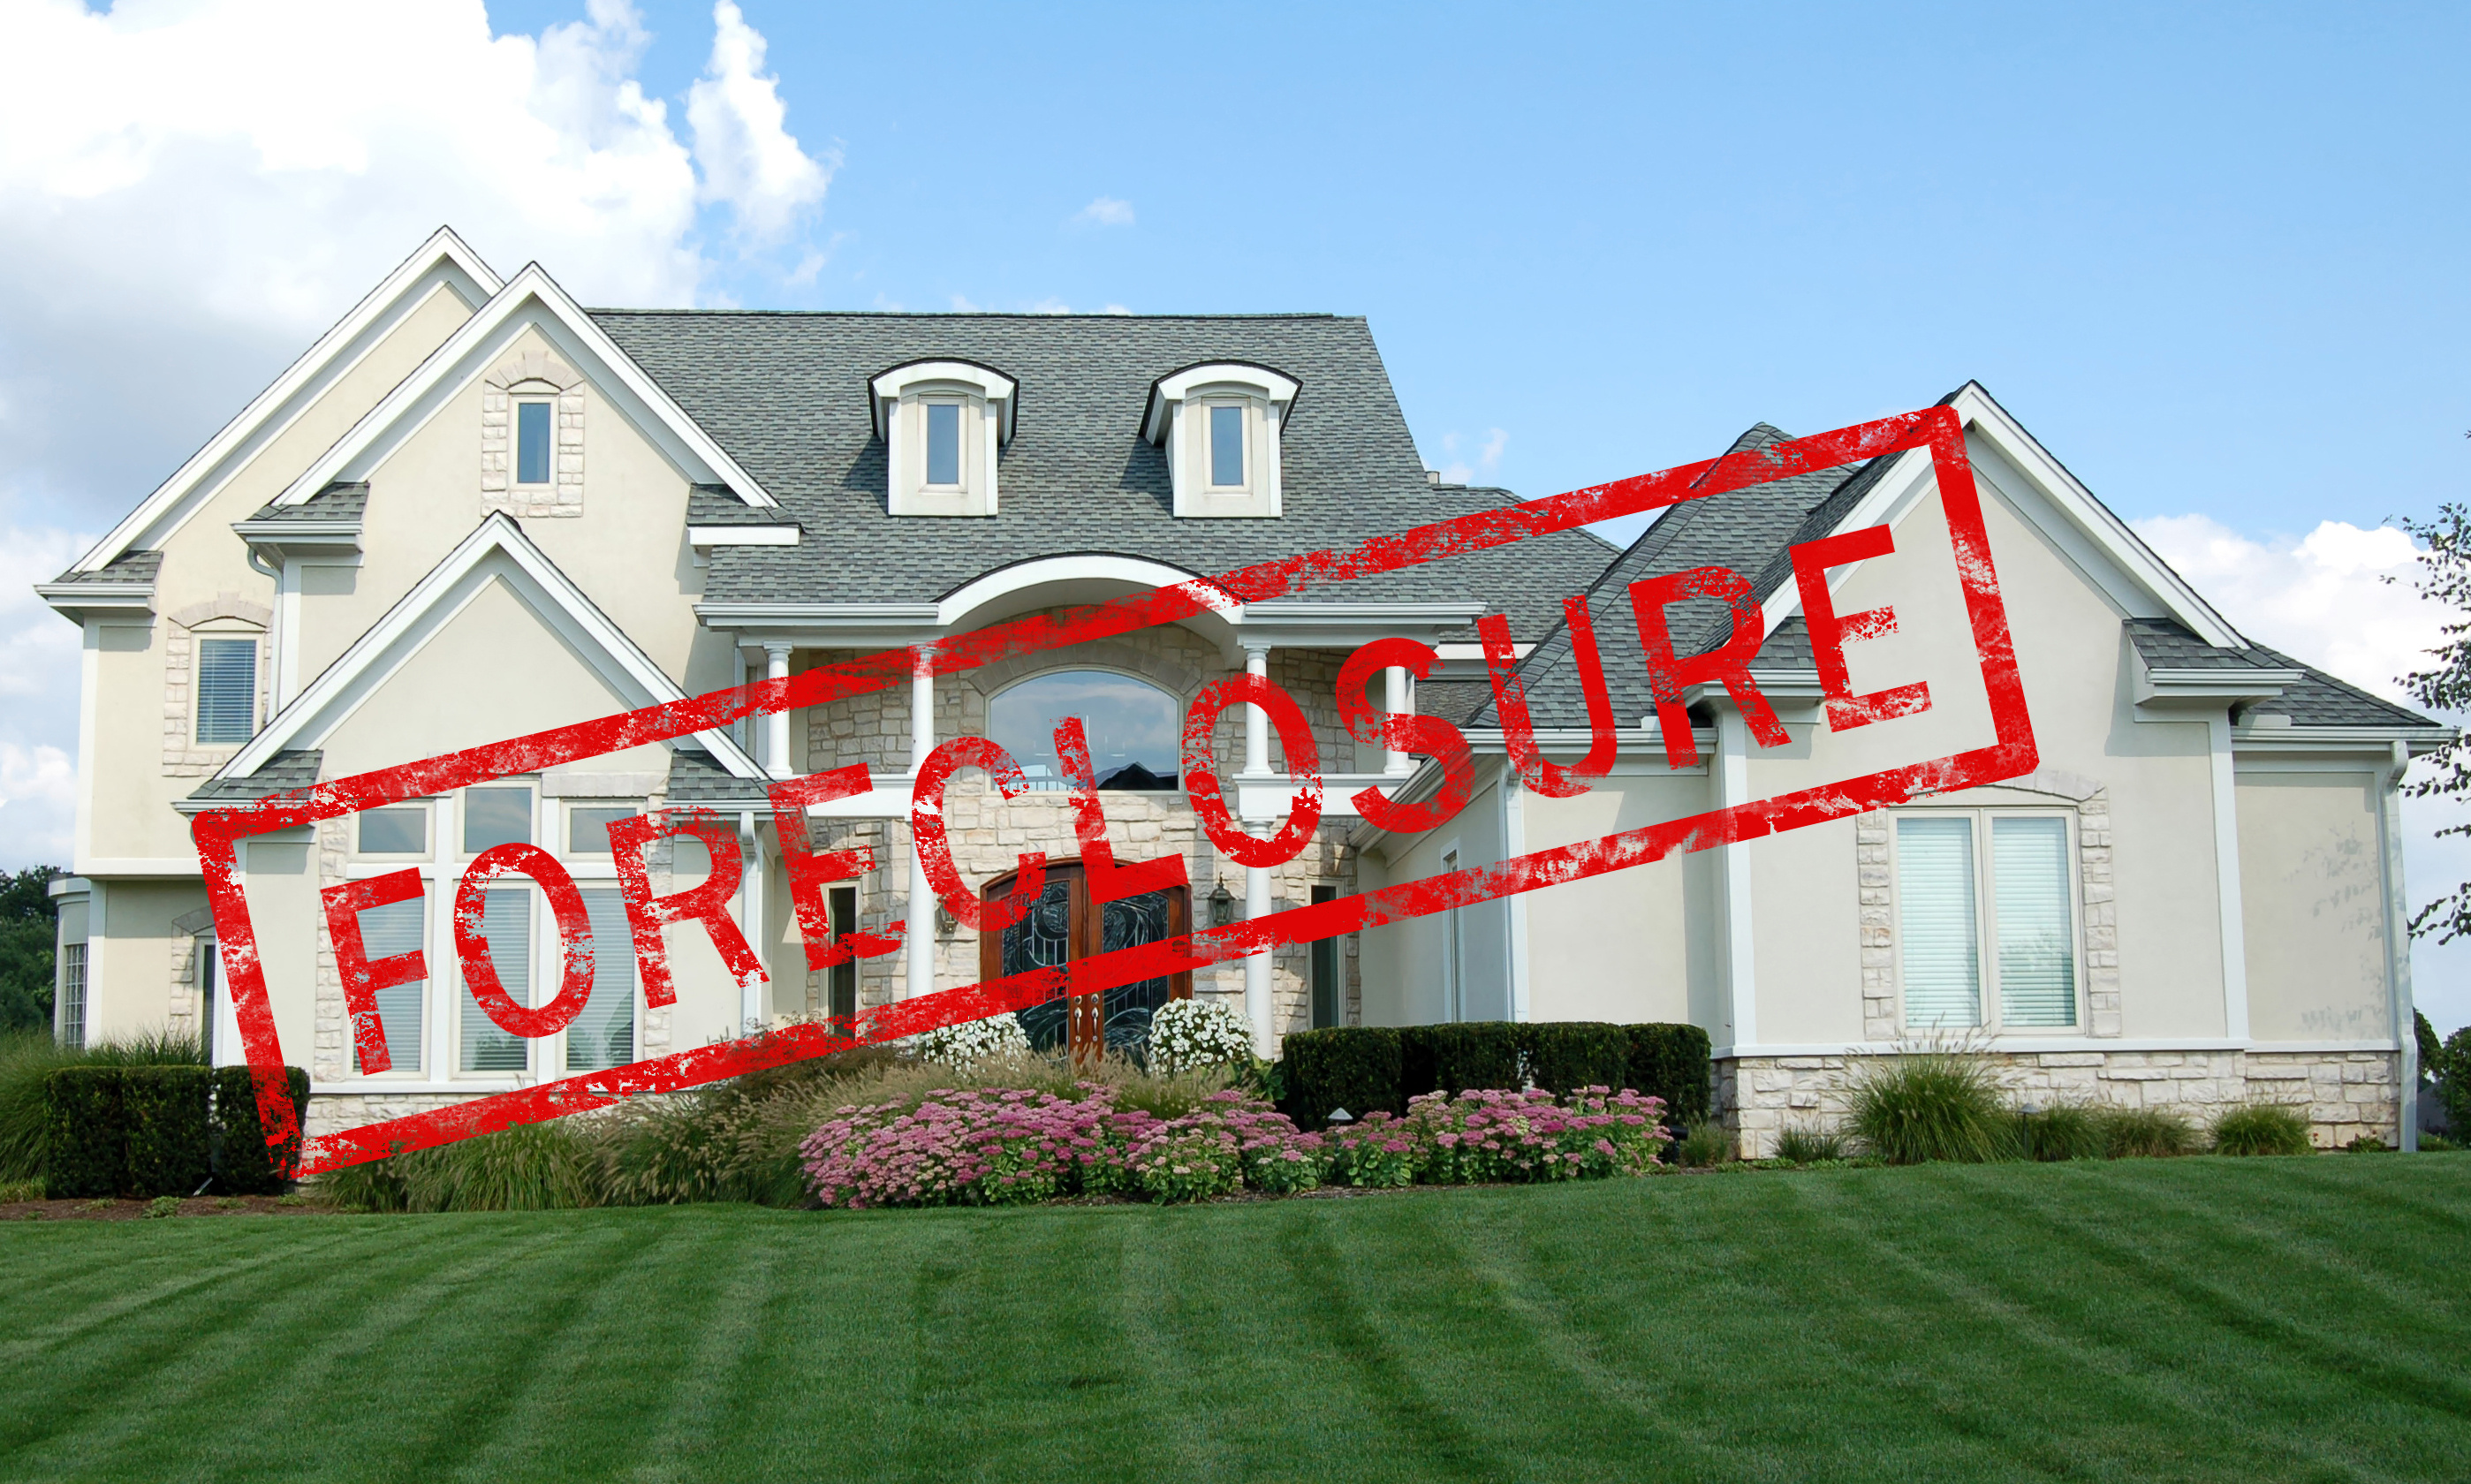 Call Appraise Colorado Inc to order appraisals for Douglas foreclosures